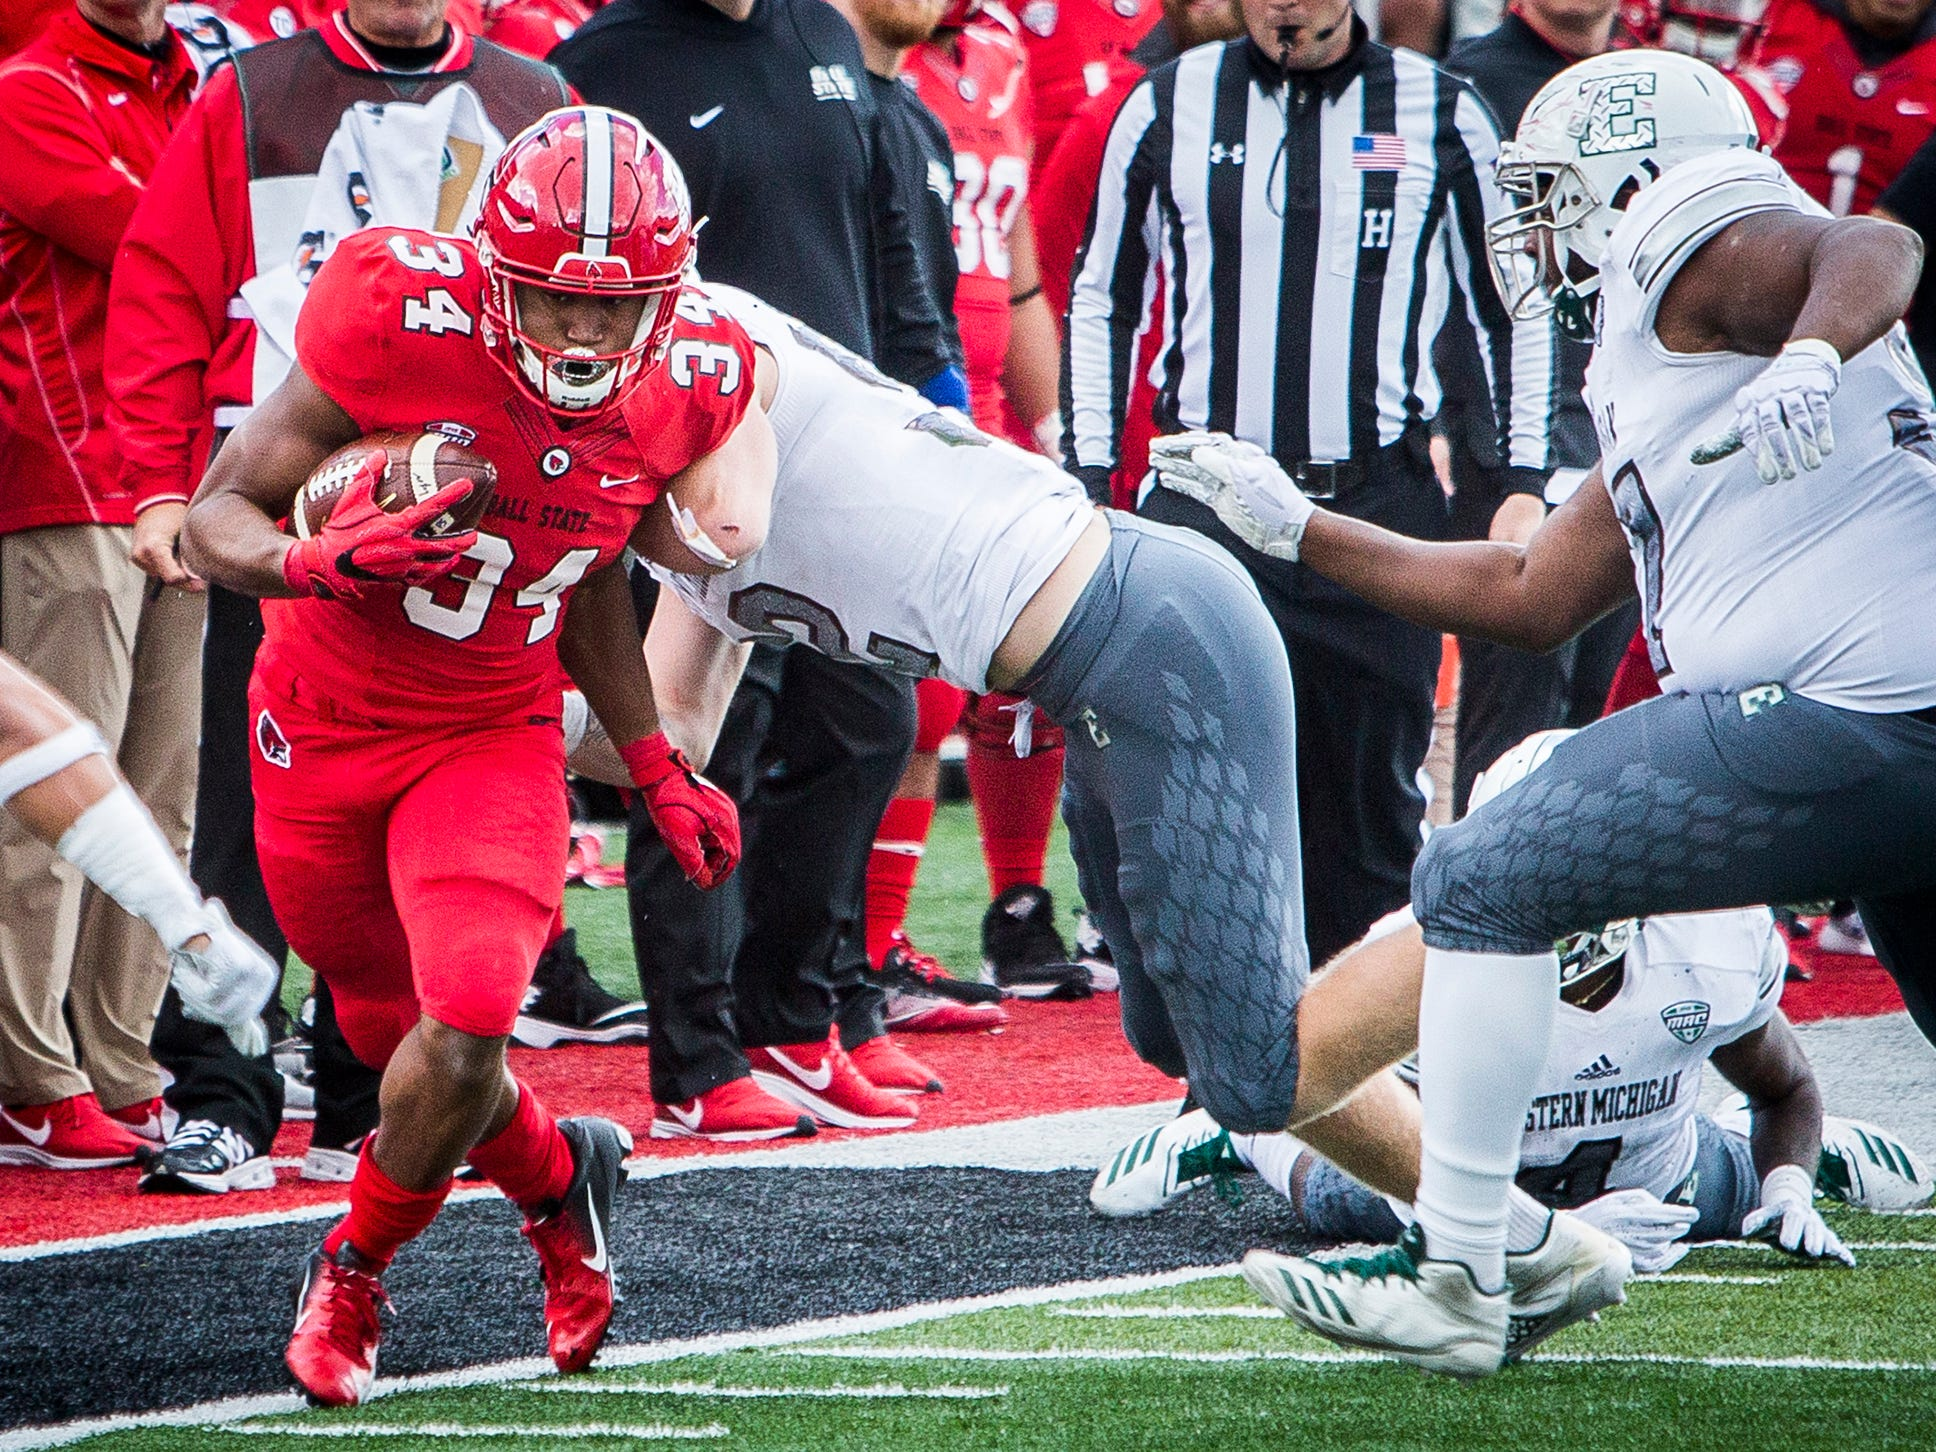 Ball State's James Gilbert runs against Eastern Michigan during their game at Scheumann Stadium Saturday, Oct. 20, 2018.